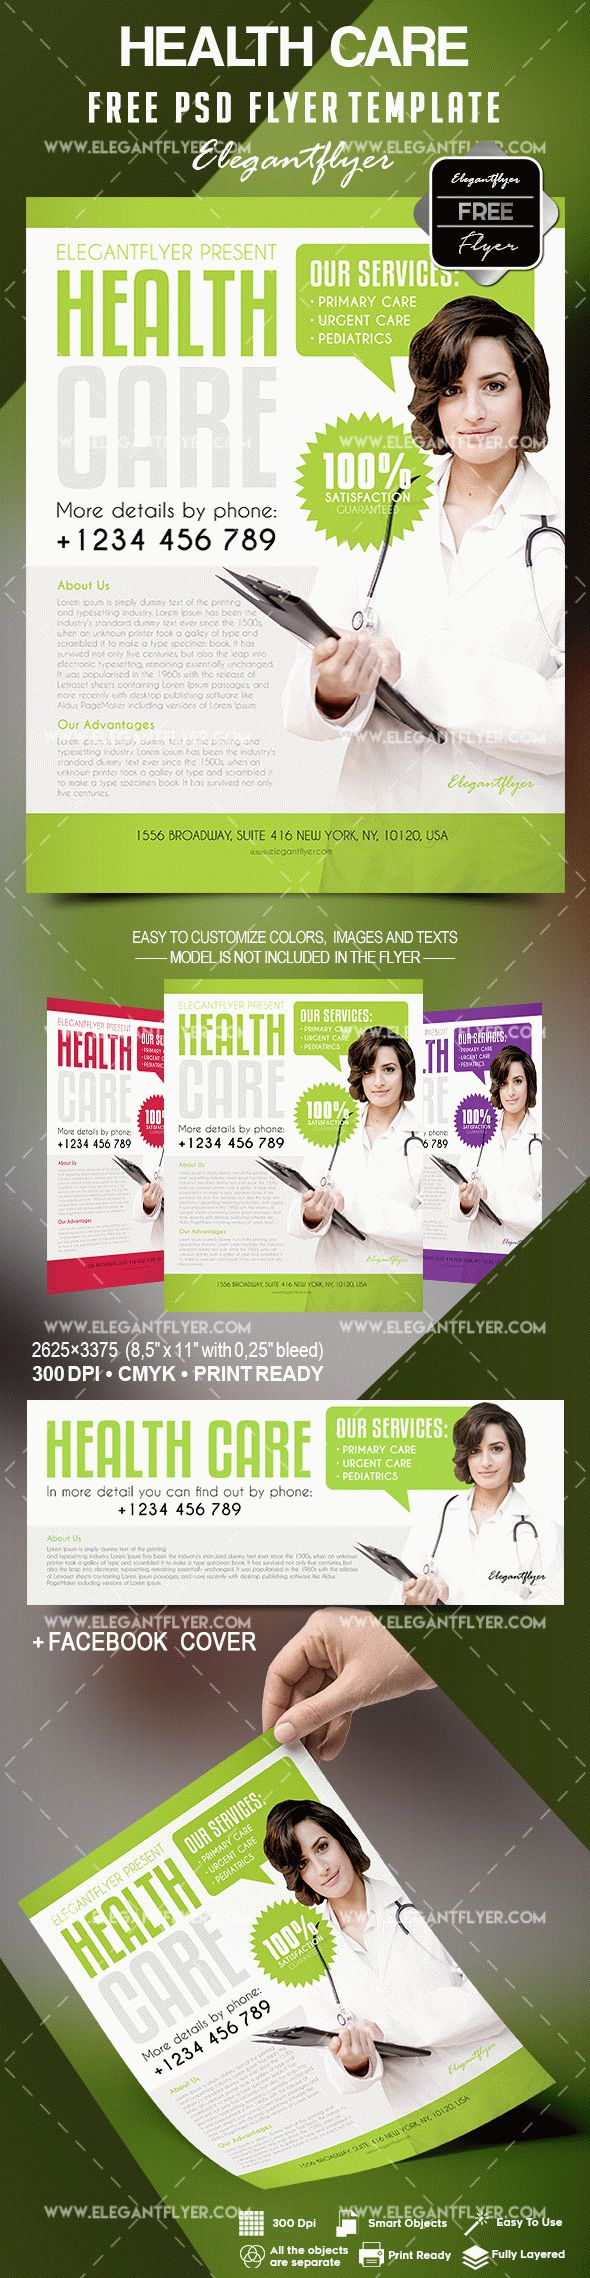 Free Health Care Flyer Template